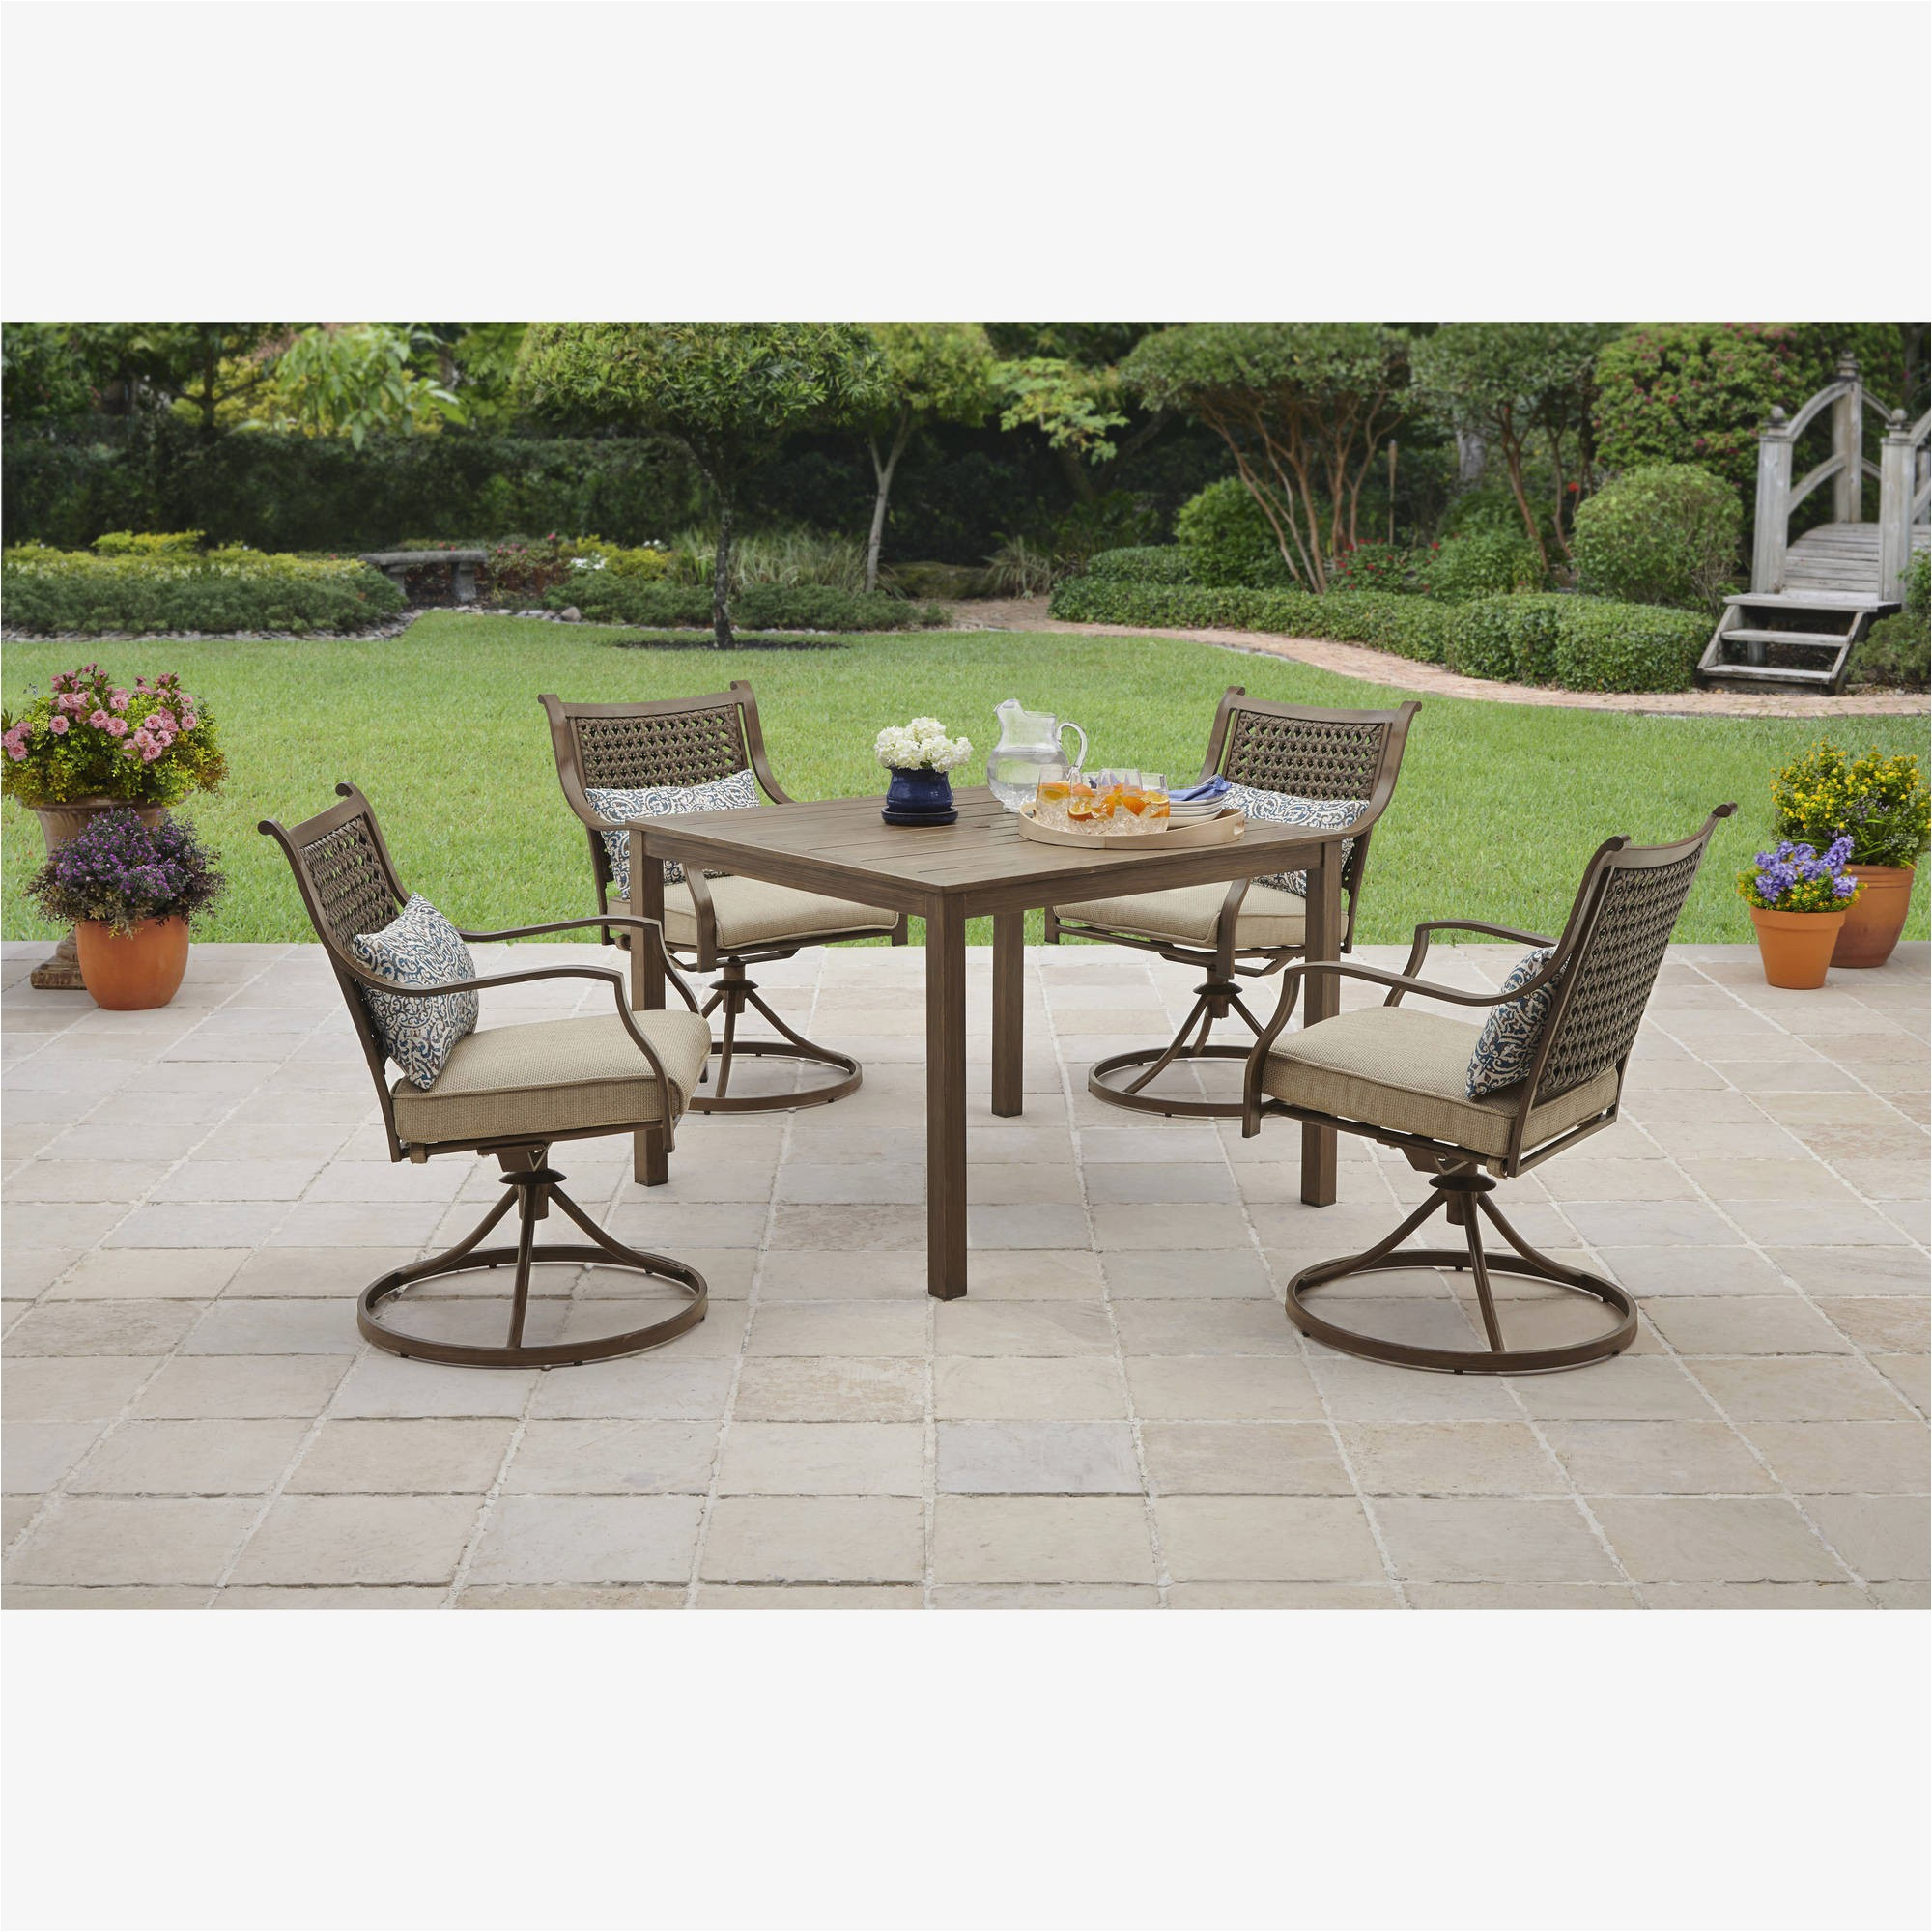 King soopers Patio Furniture King soopers Patio Furniture Room Design Plan top with Home Design